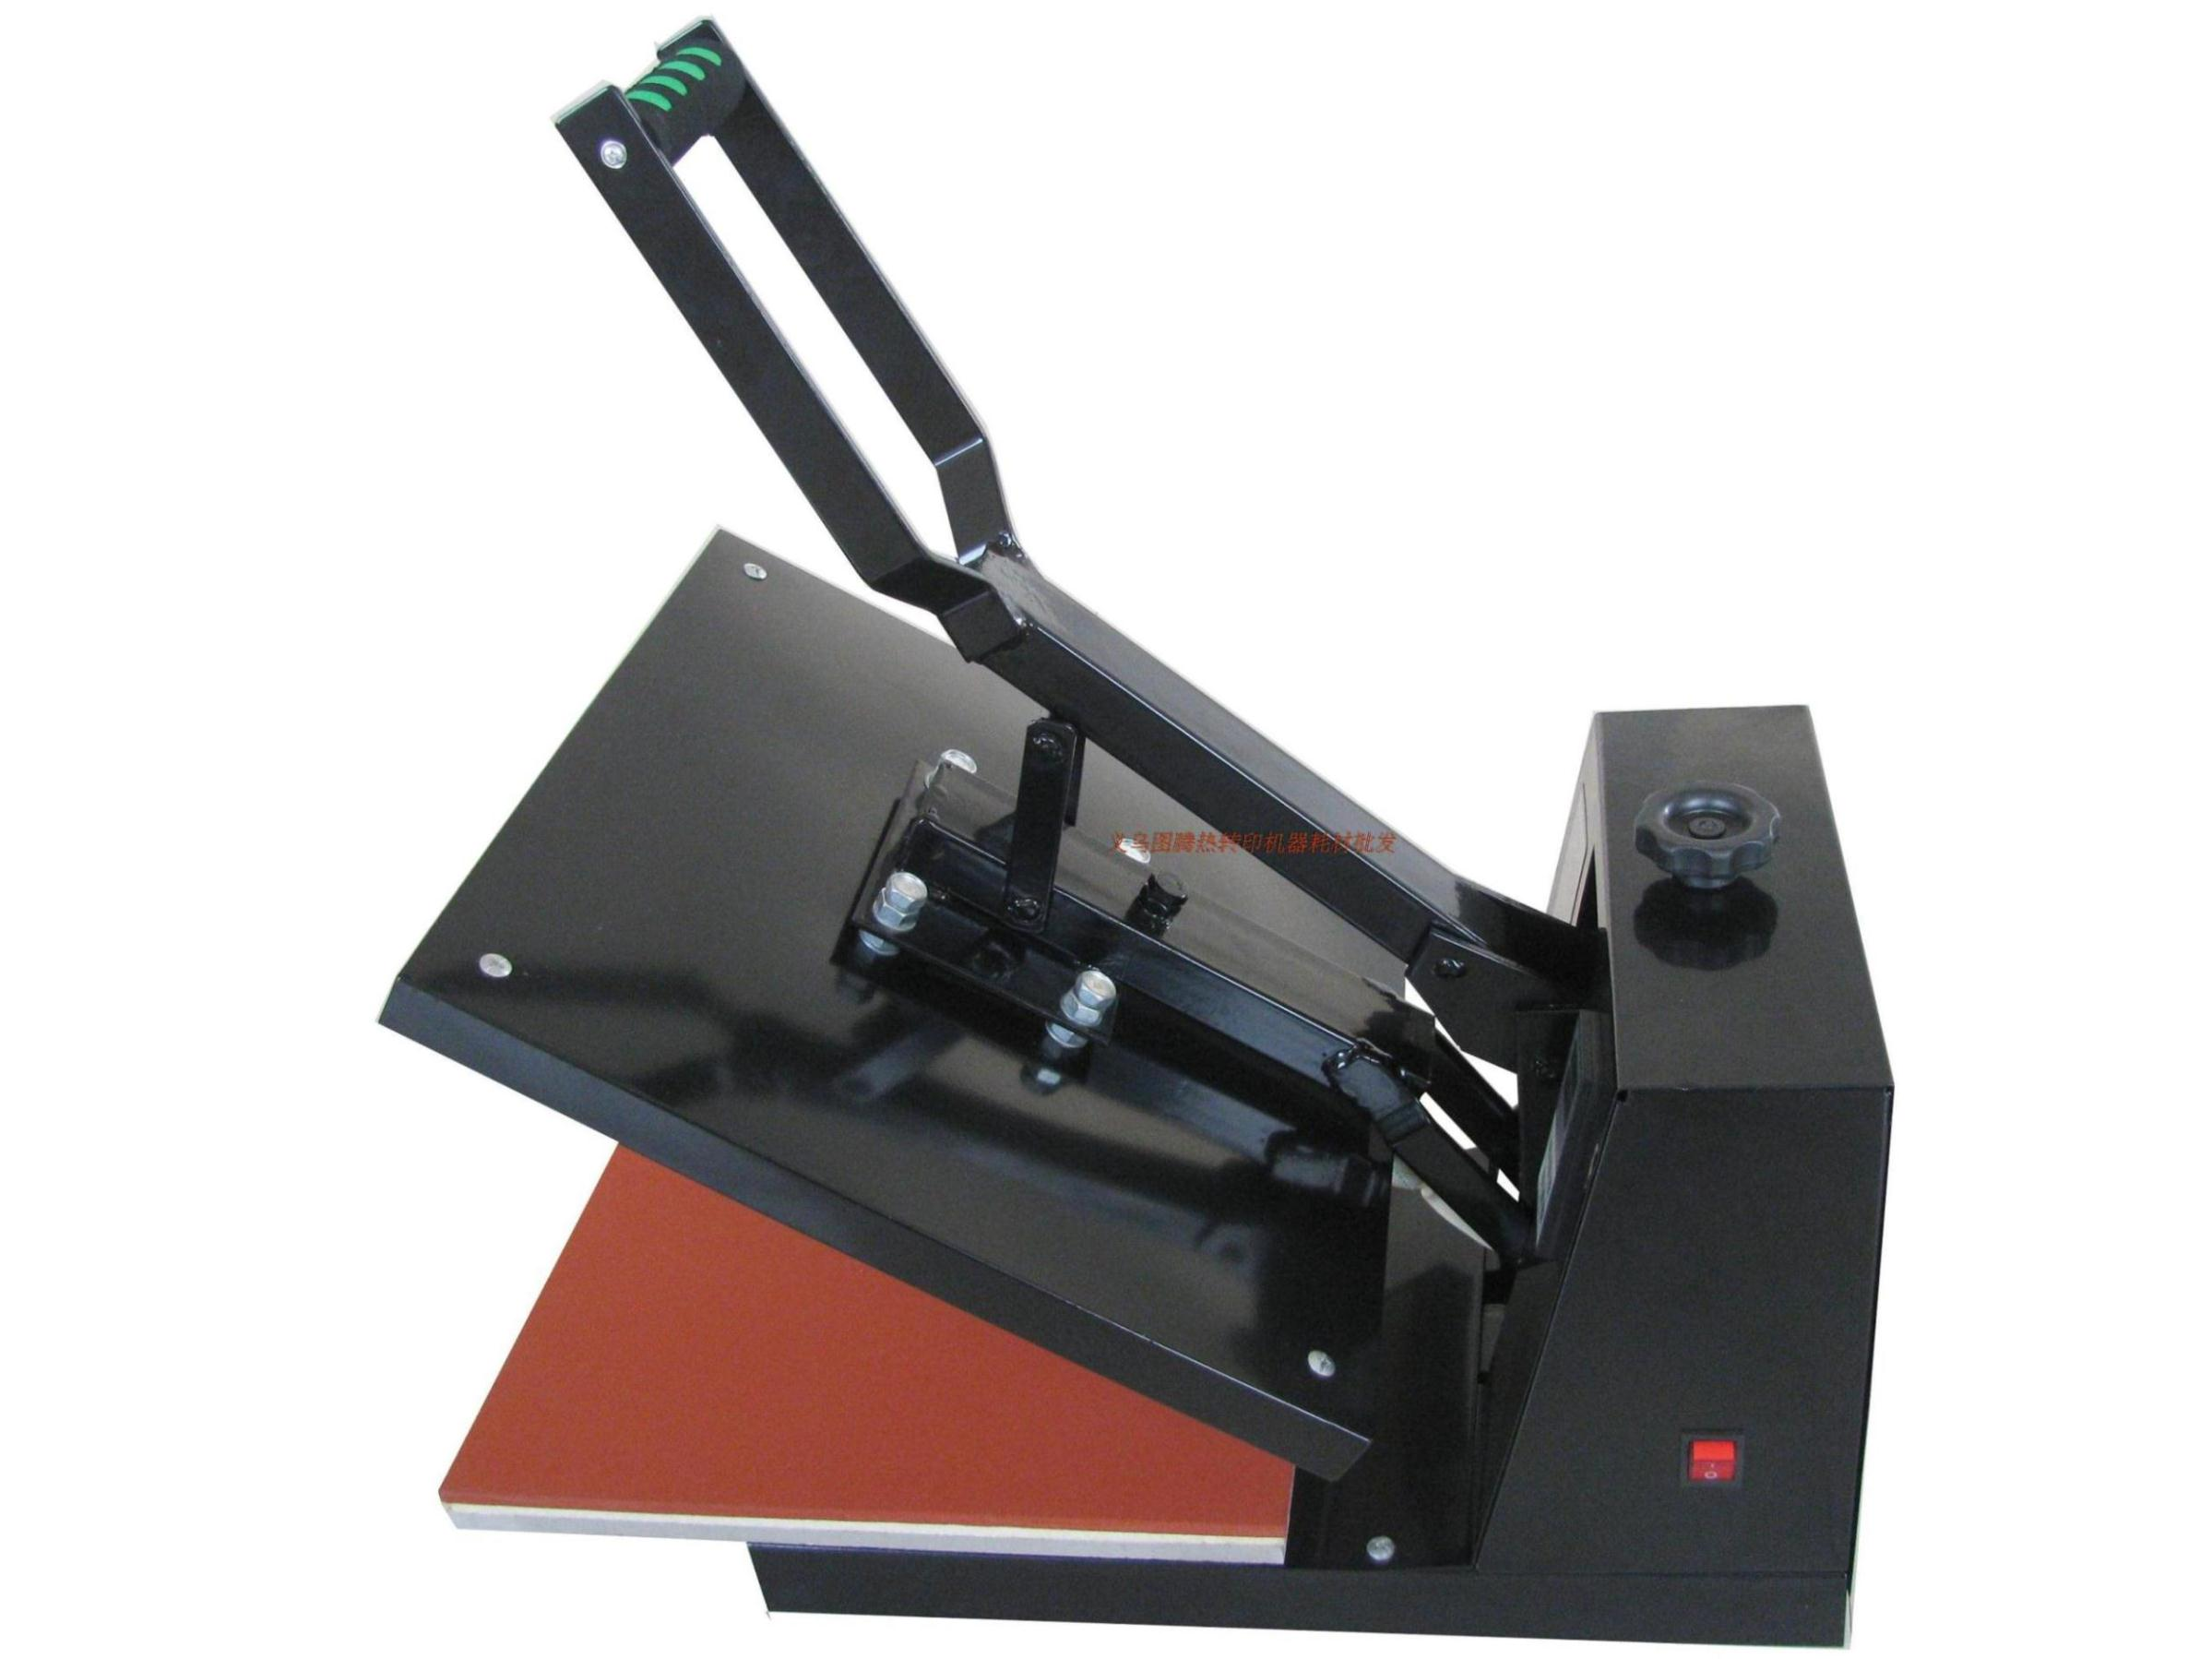 38 38cm digital tshirt printing machine t shirt printing for T shirt printing machines